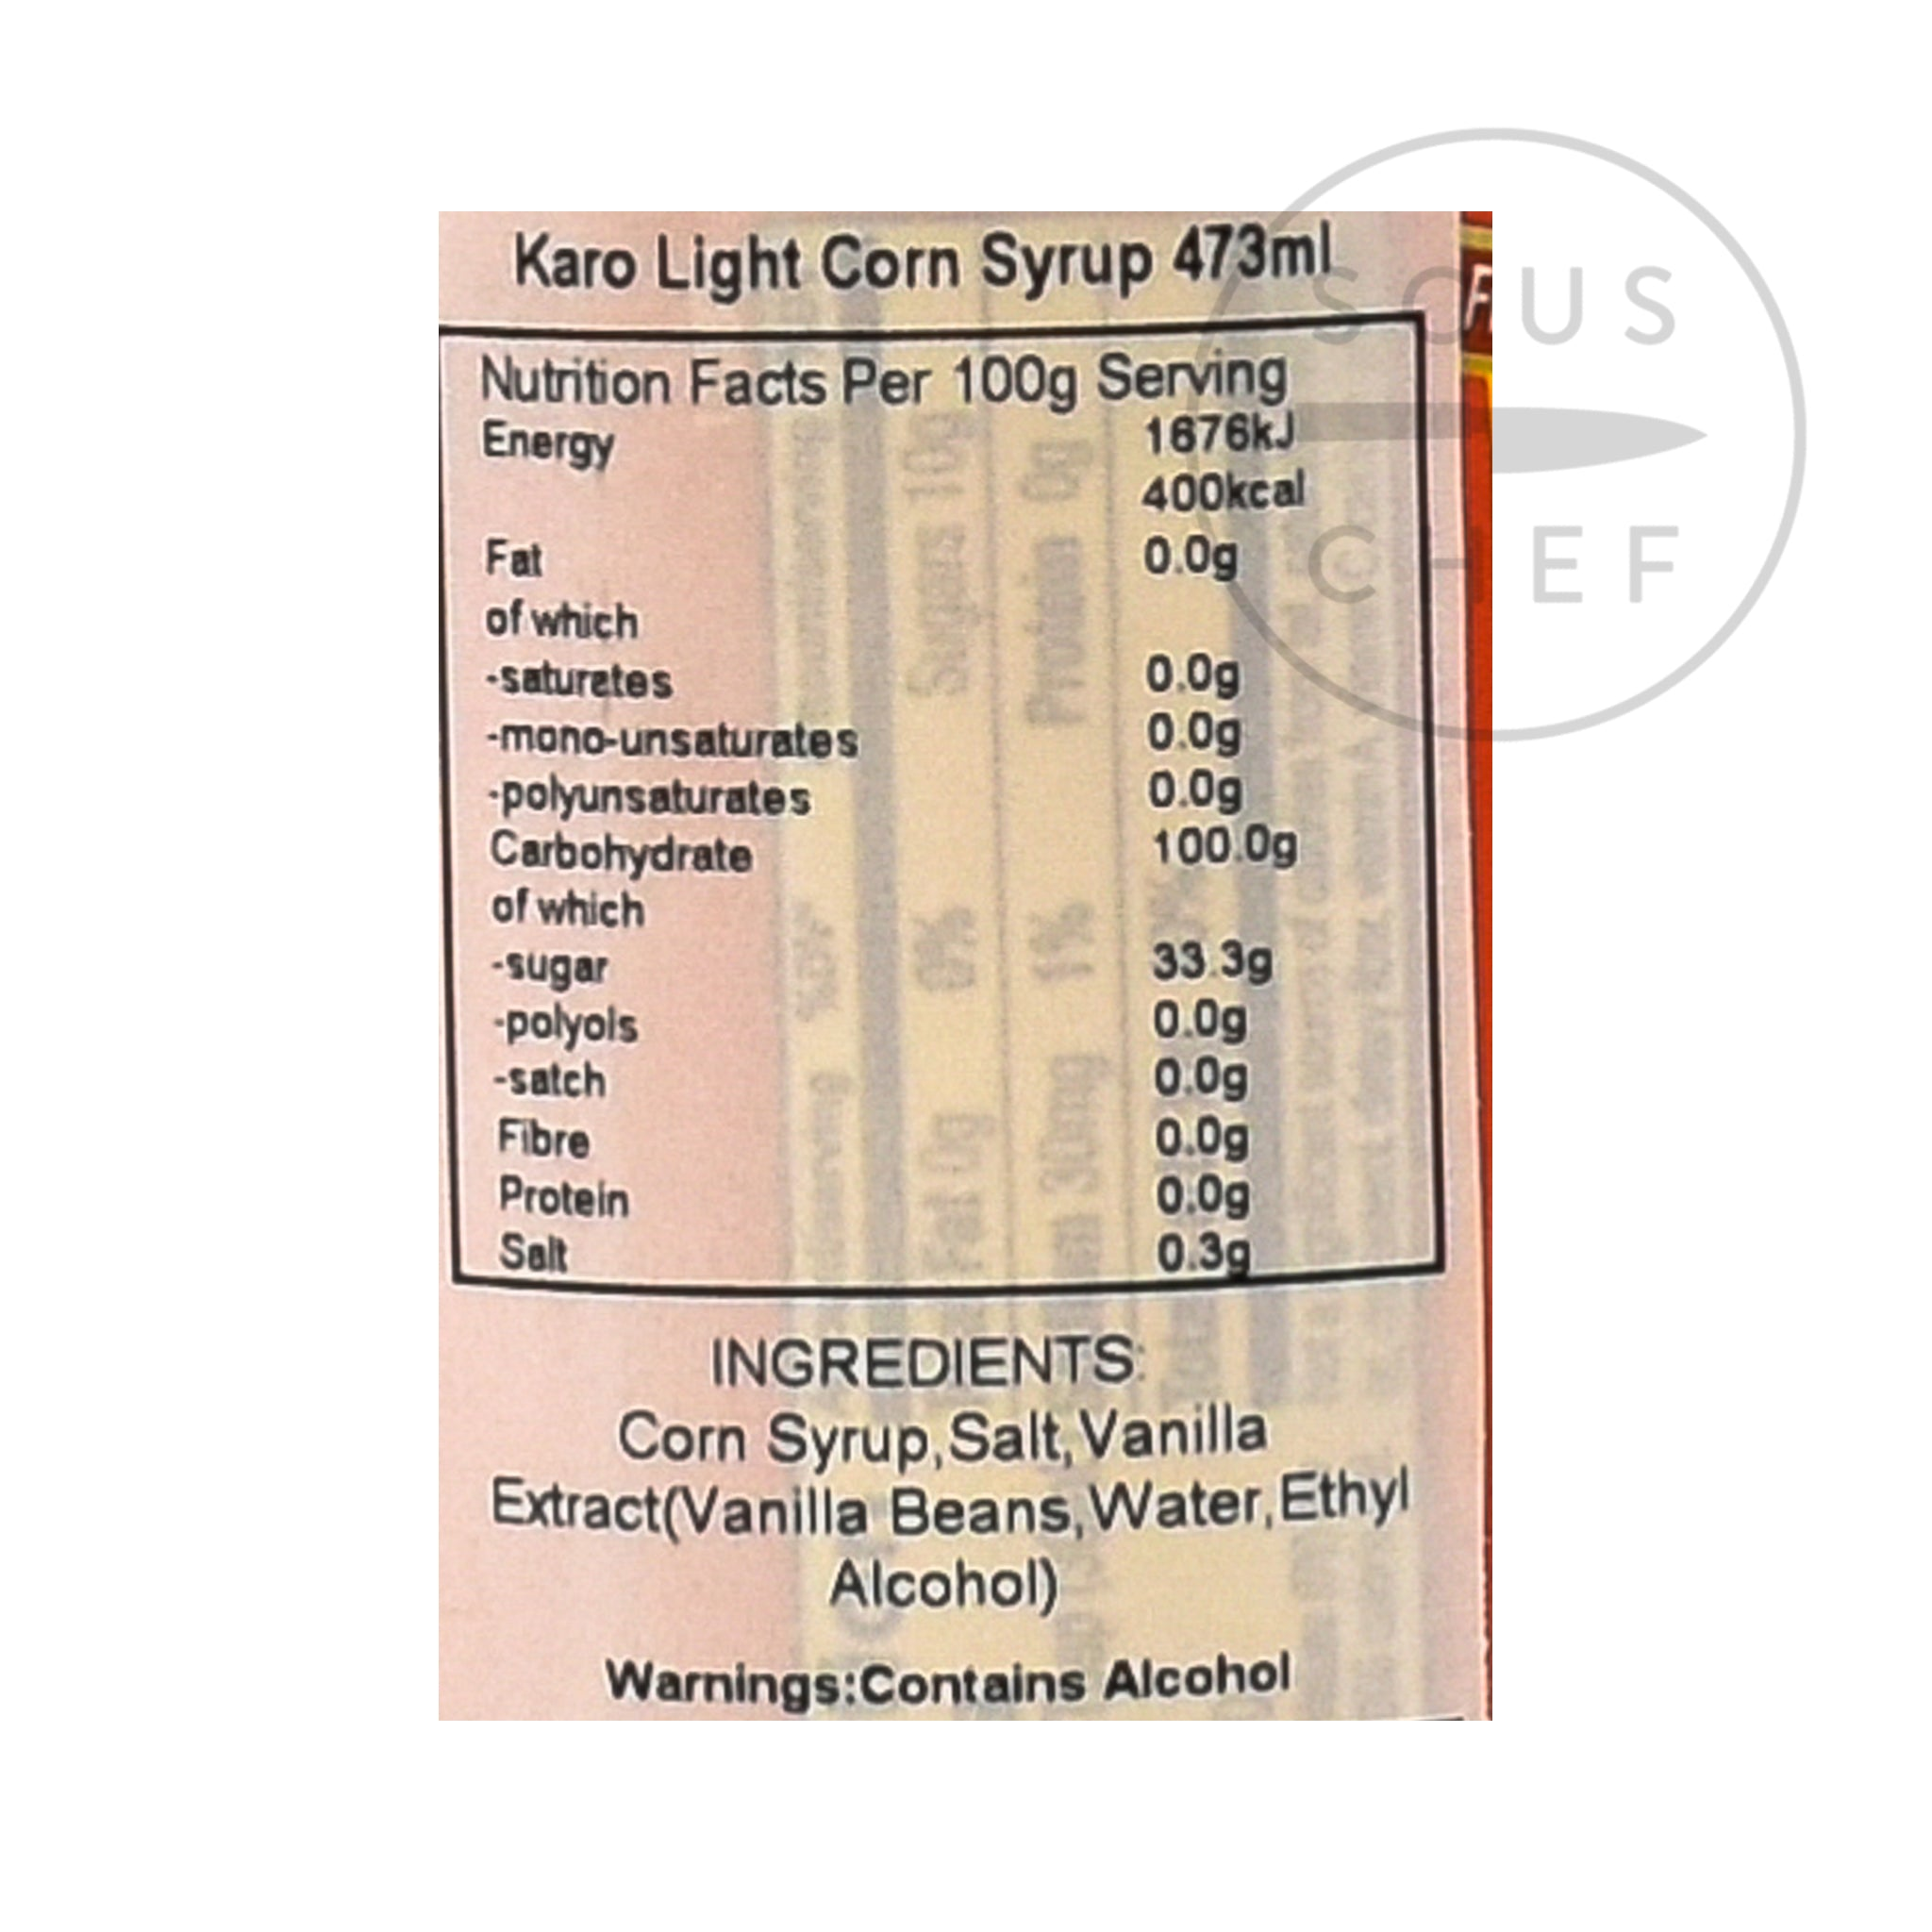 Karo Light Corn Syrup - Red 473ml  nutritional information ingredients